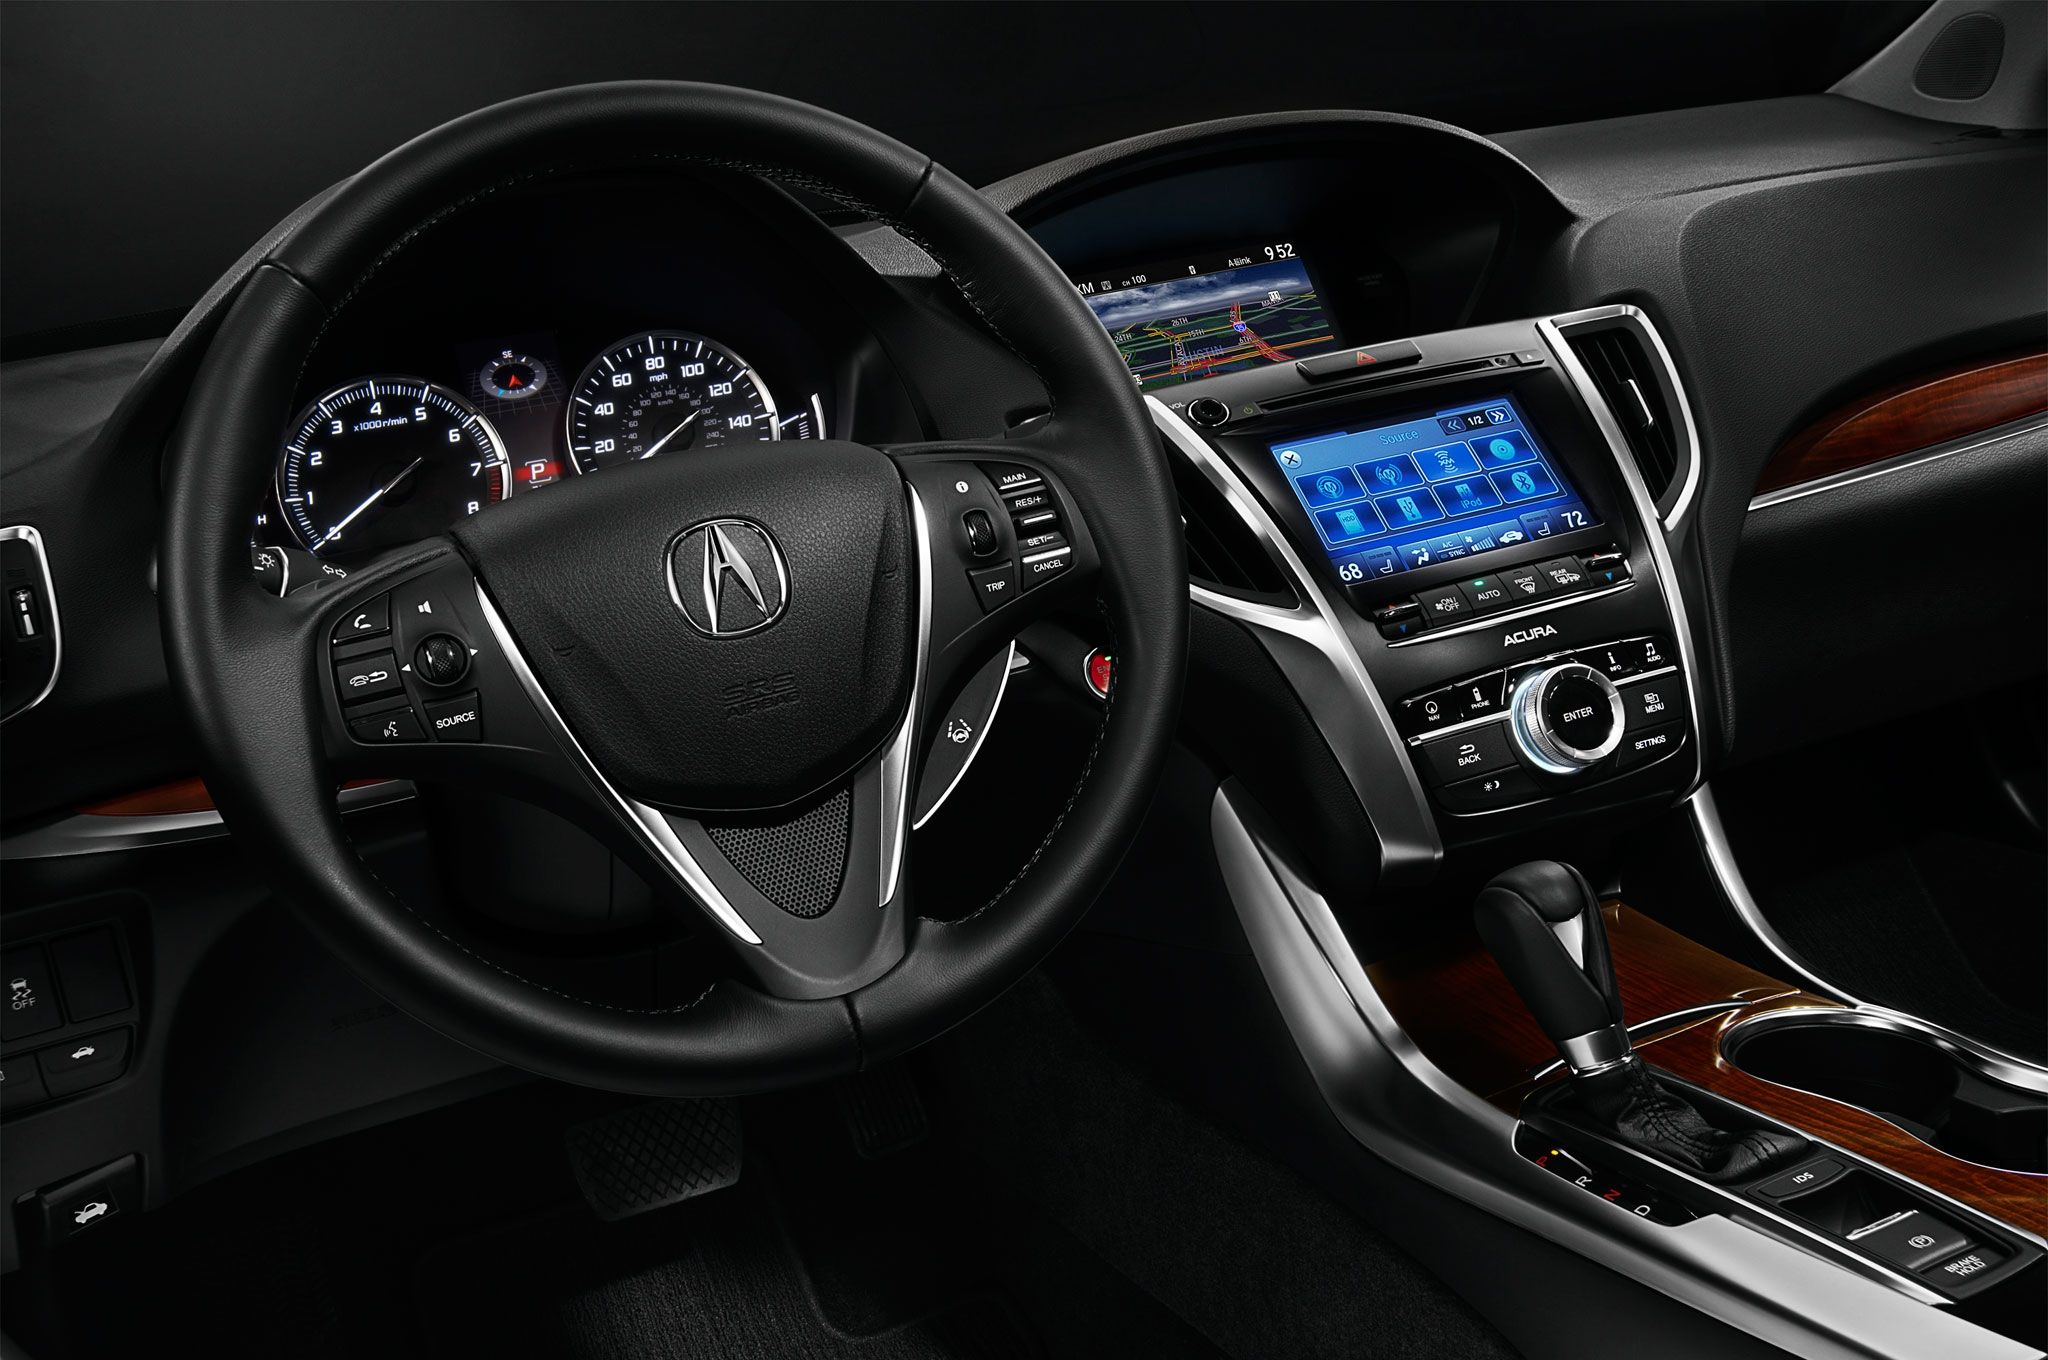 2015 Acura Tlx Interior Hd Wallpaper 294 Car Wallpaper Gallery Car Hd Image Ferrari 2015 Car Wallpaper Gallery Car Hd Imag Acura Tlx Acura Acura Cars